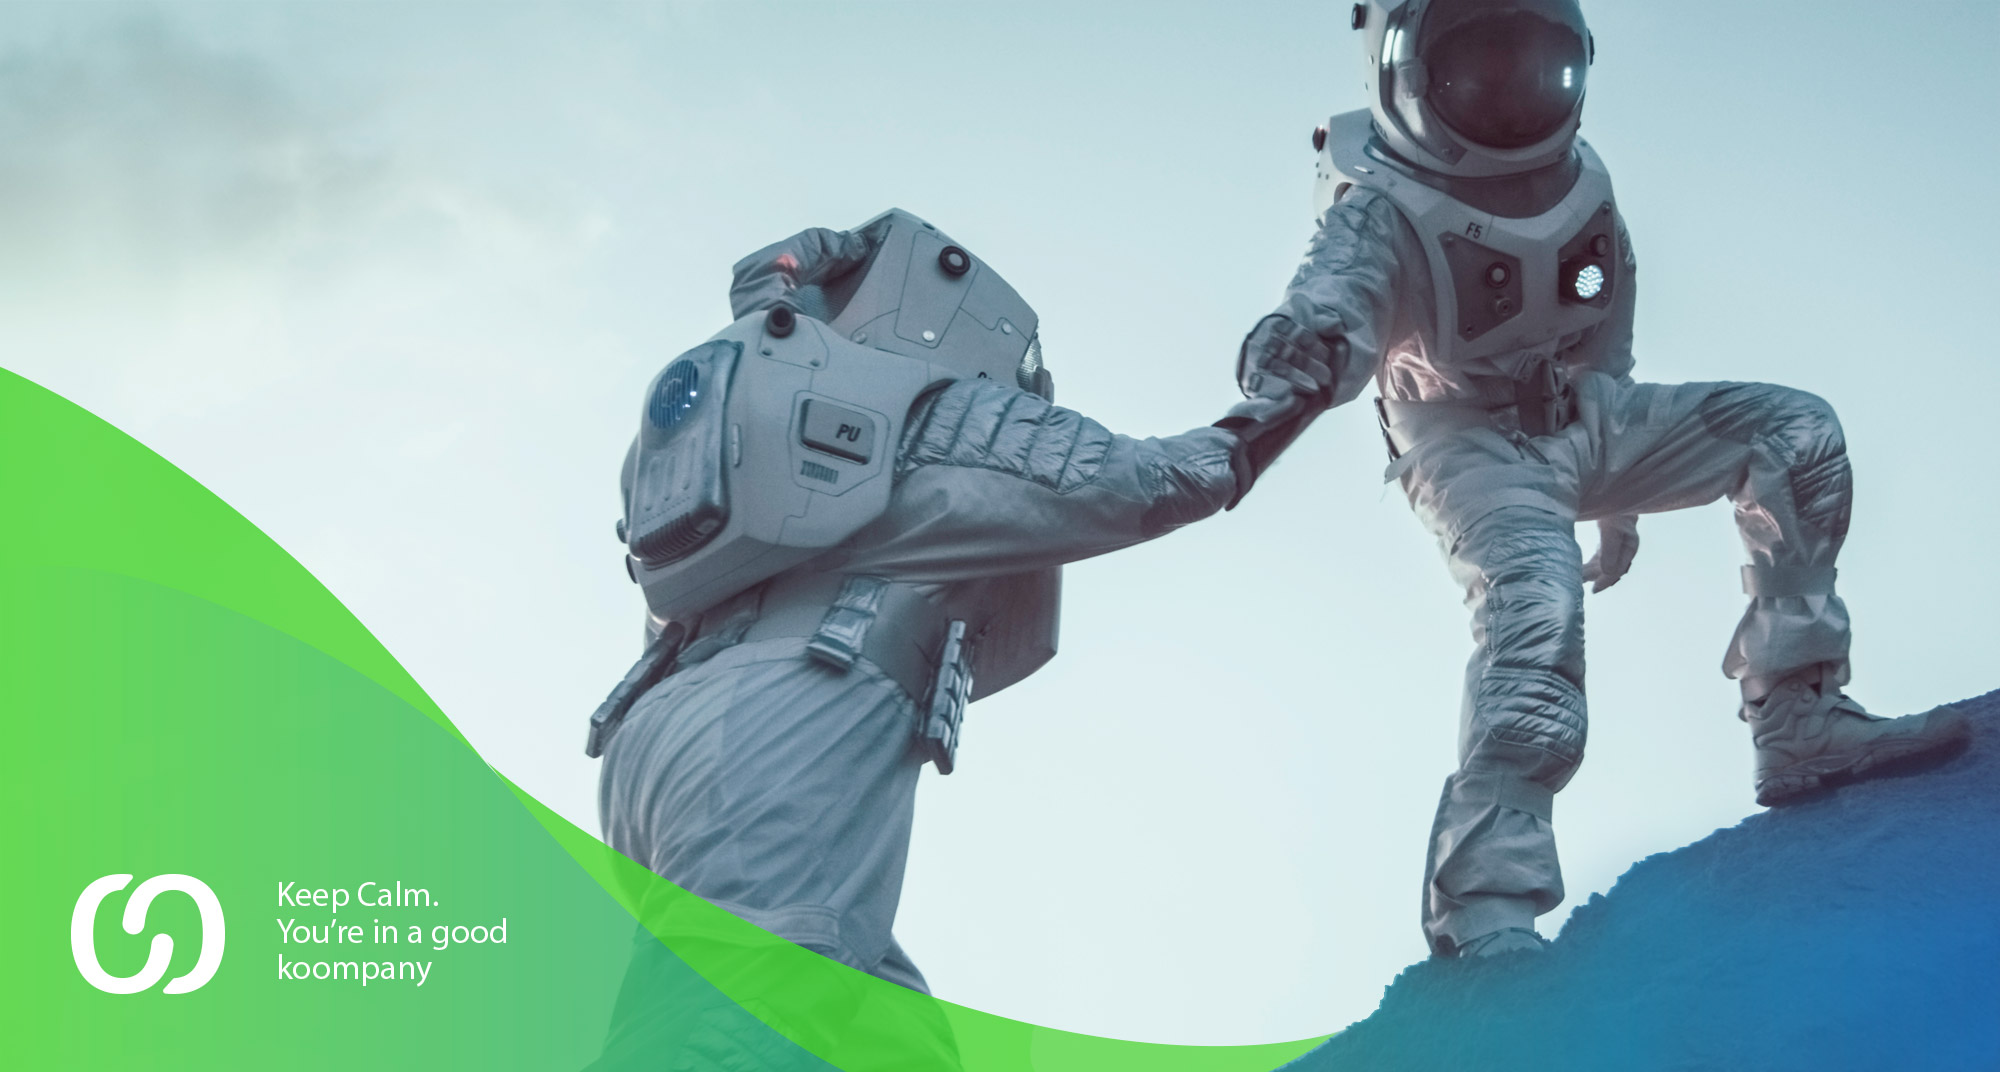 Publicidad de dos astronautasayudándose para empresa de marketing digital y social media